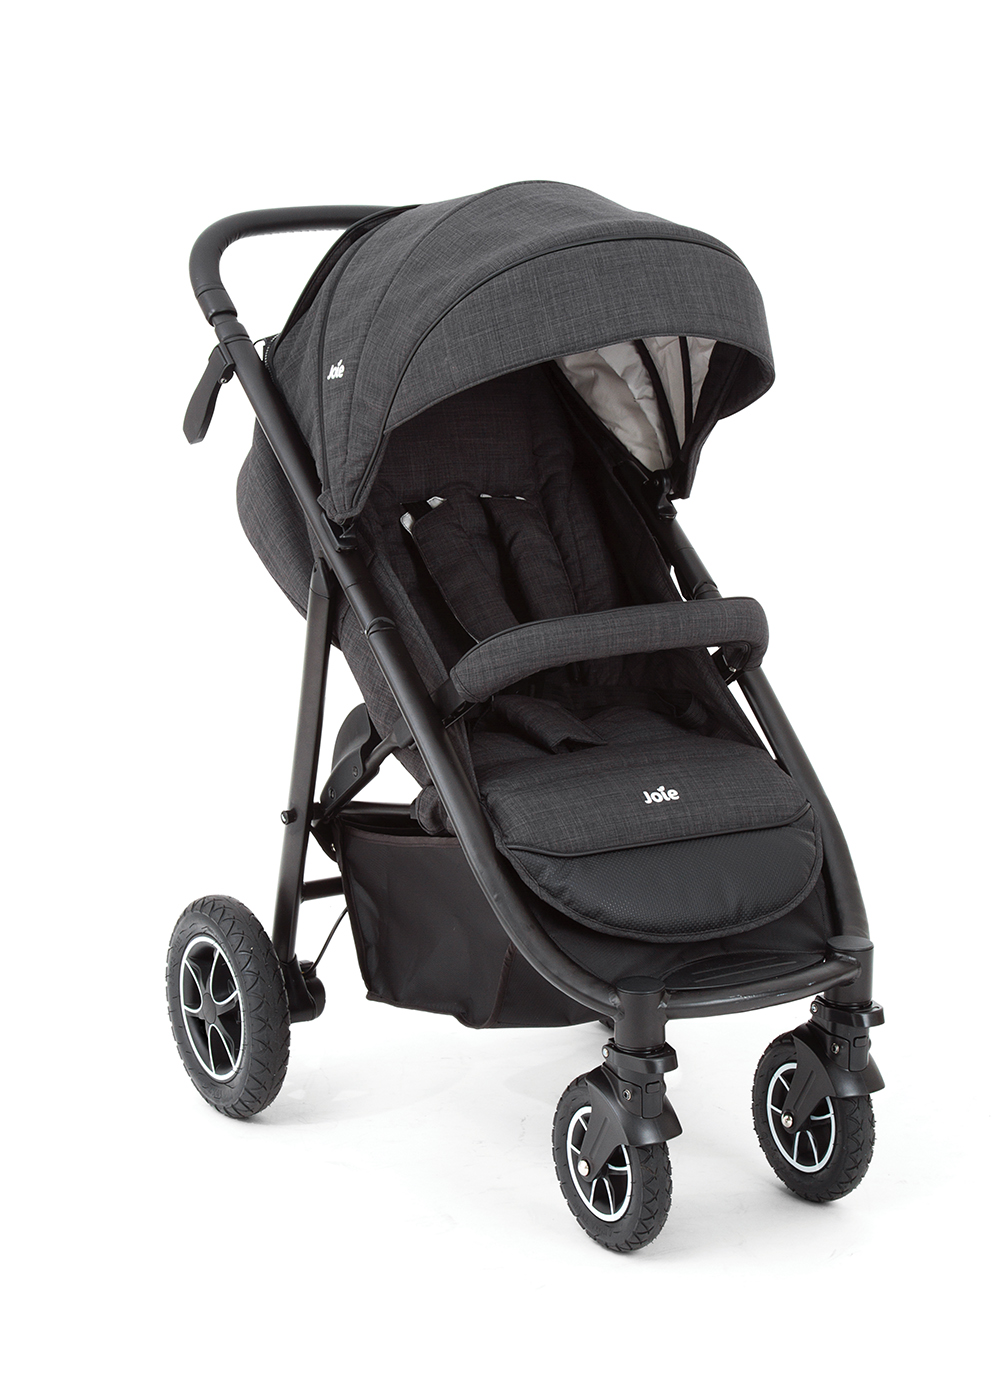 Travel System Joie Chrome Mytrax Travel System Joie South Africa Explore Joie